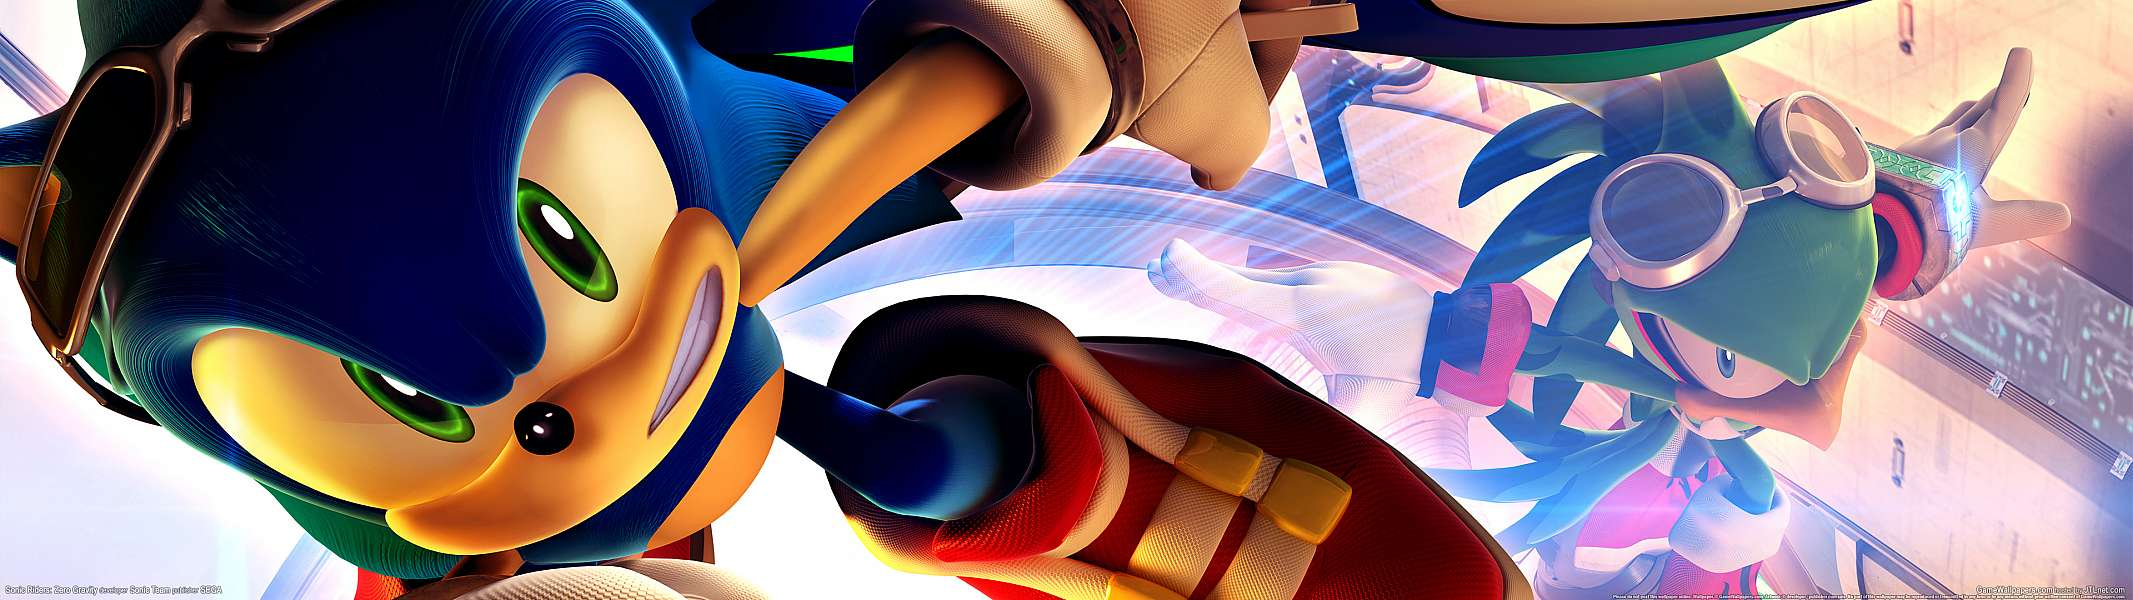 Sonic Riders: Zero Gravity dual screen wallpaper or background